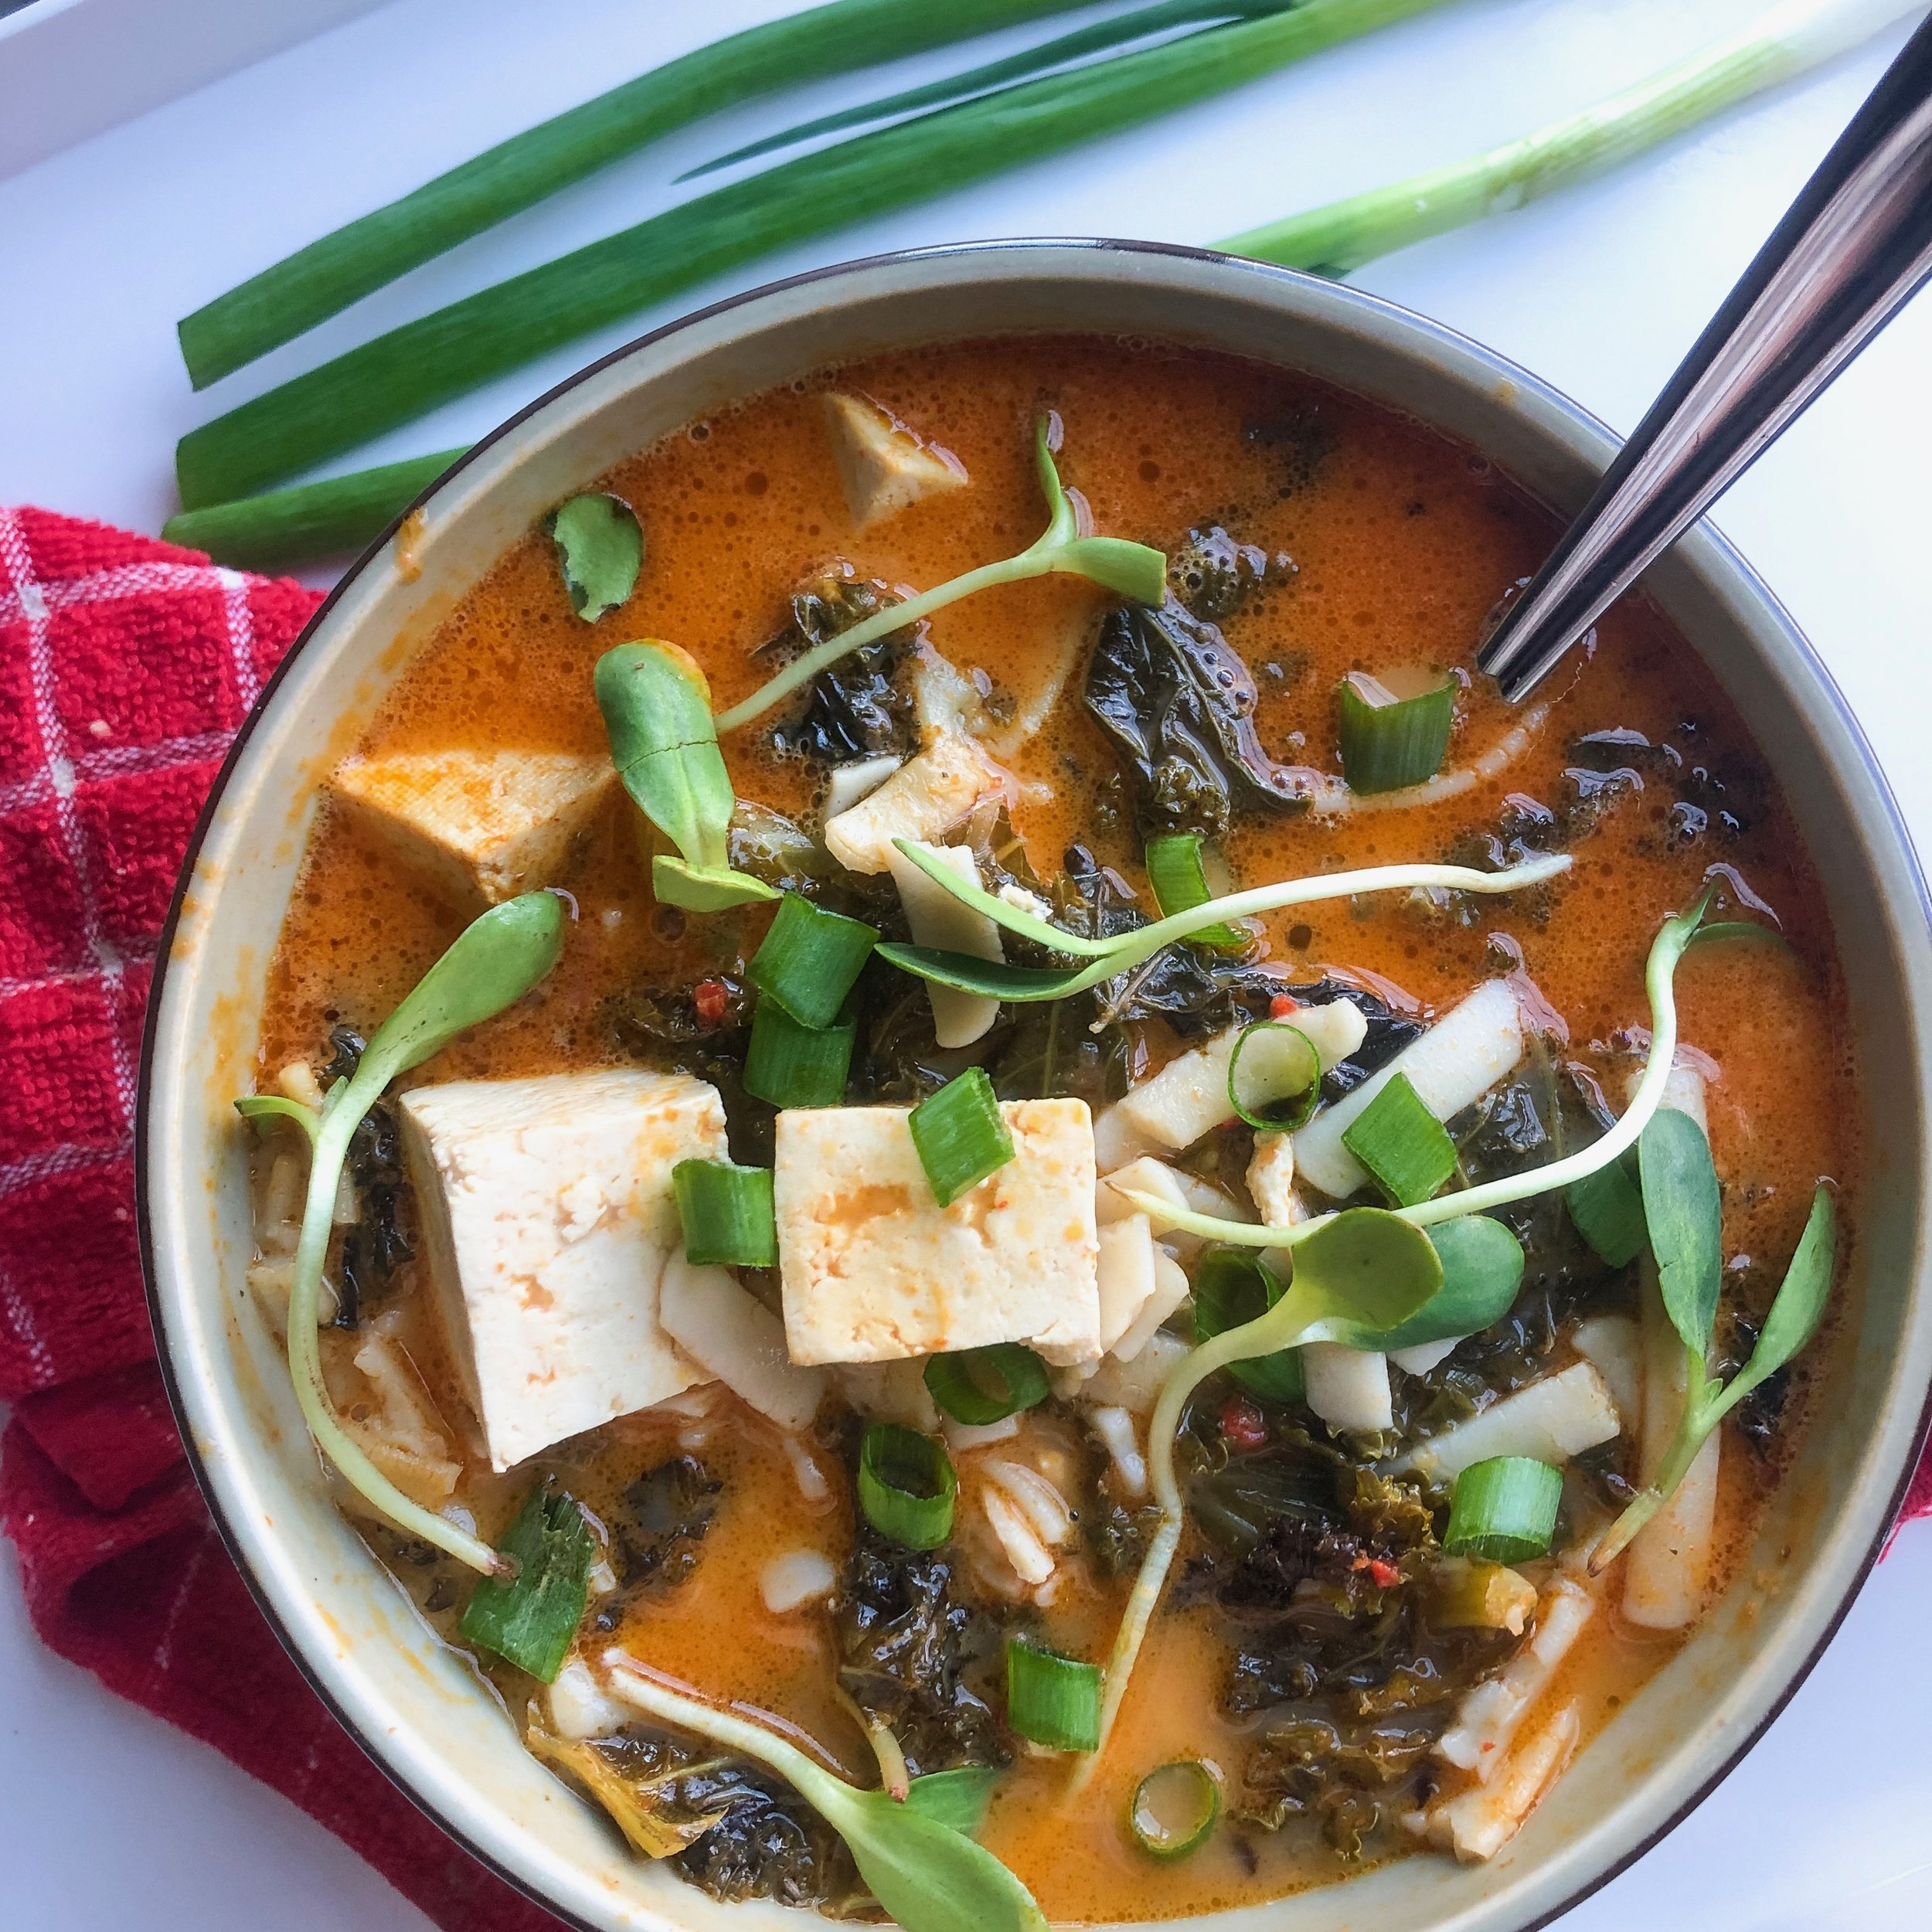 Thai Coconut Curry Soup - DAIRY-FREE, VEGAN, GLUTEN-FREE (OPTIONAL), MEAL PREP